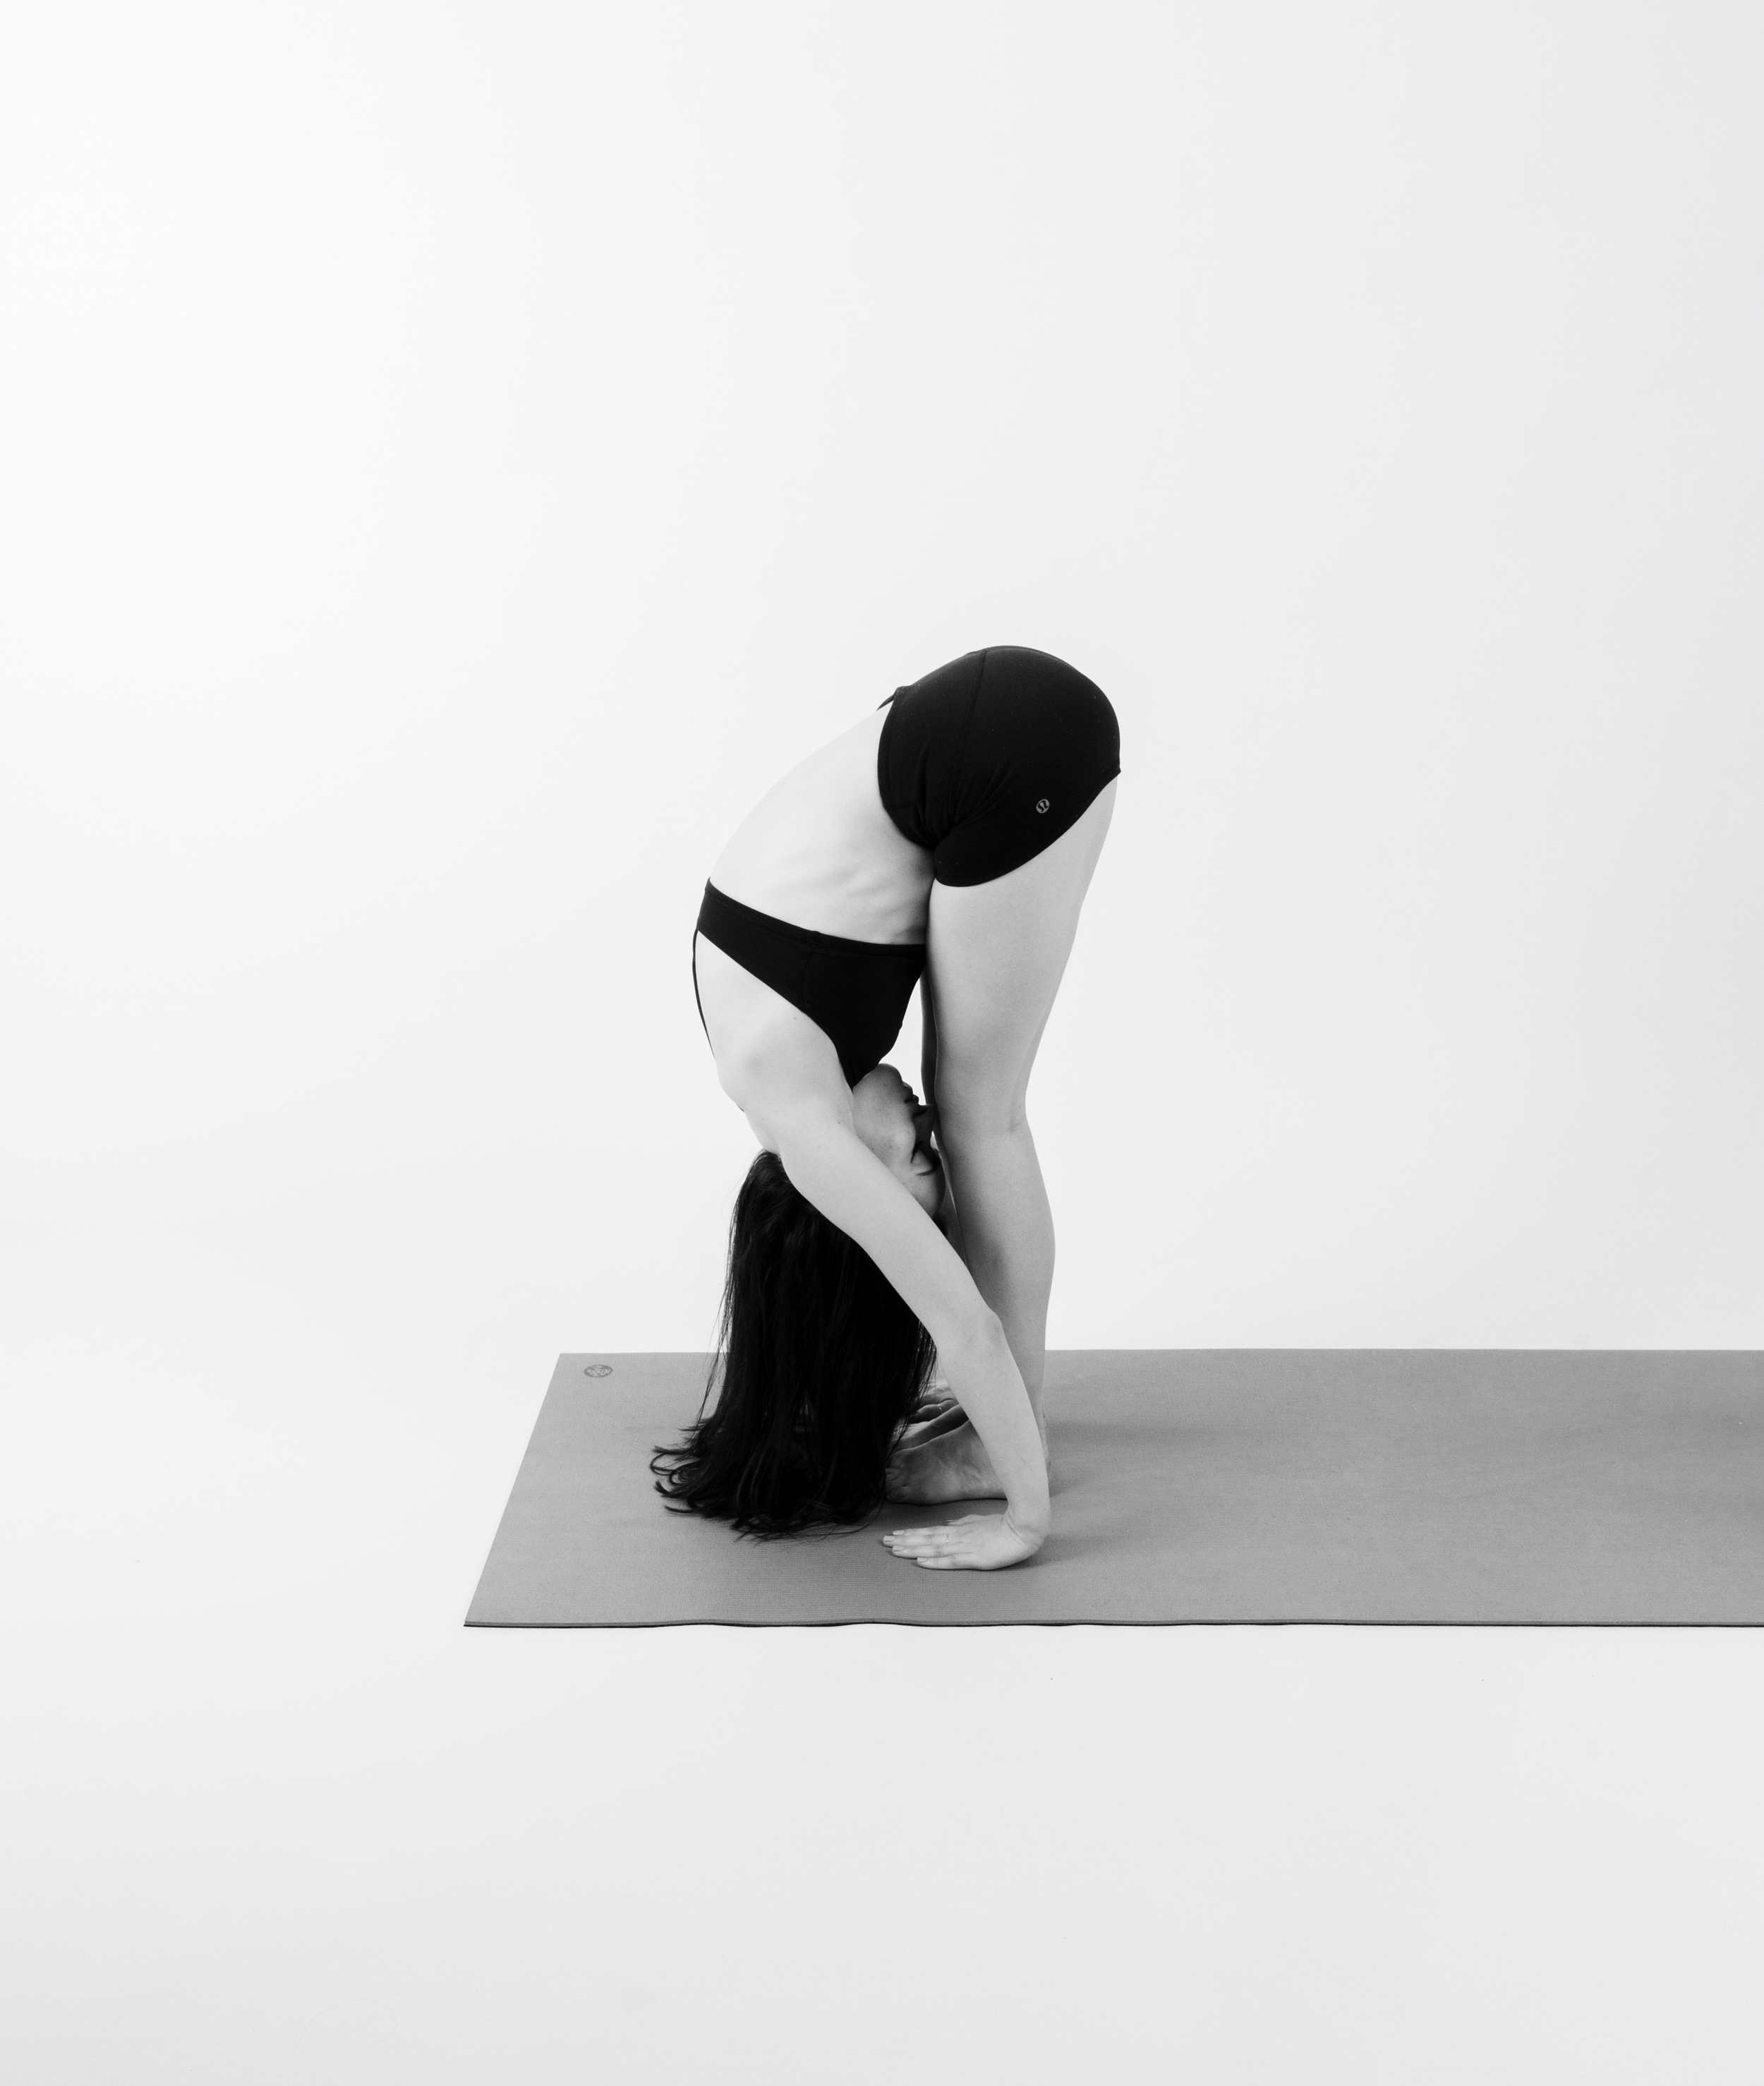 FORWARD FOLD     Gently exhale, fold forward and down. Bend your knees deeply and let your arms hang heavy down to your sides. Try swaying a little from side to side, nod your head yes and shake it no, move around and stay loose.